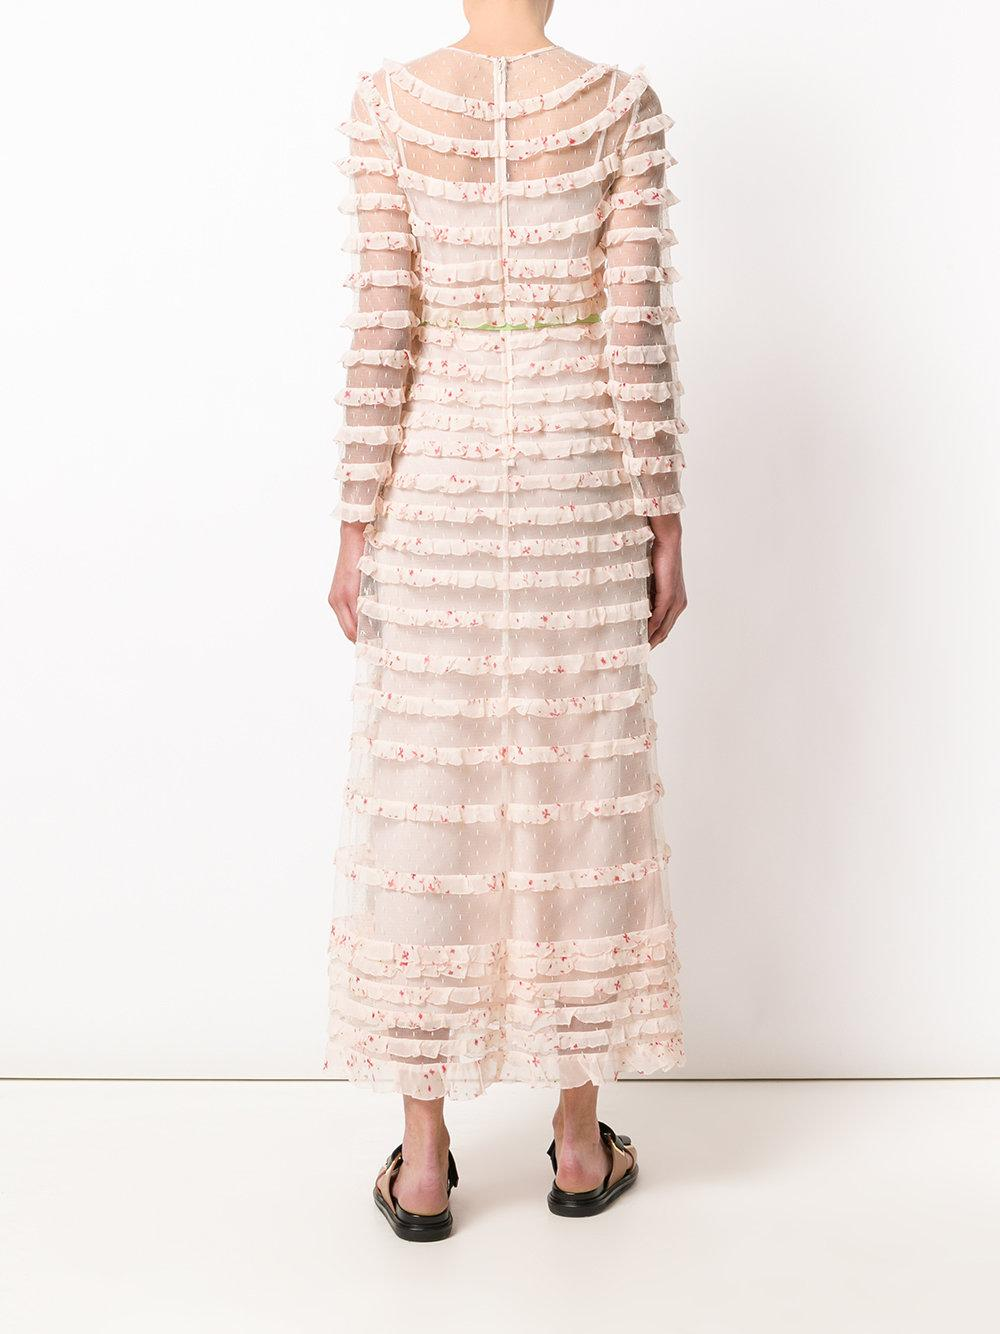 tiered maxi dress - Nude & Neutrals Red Valentino Clearance Finishline Top Quality Sale Online Clearance Store Cheap Price Footaction Sale Online xdA3Hvuwg